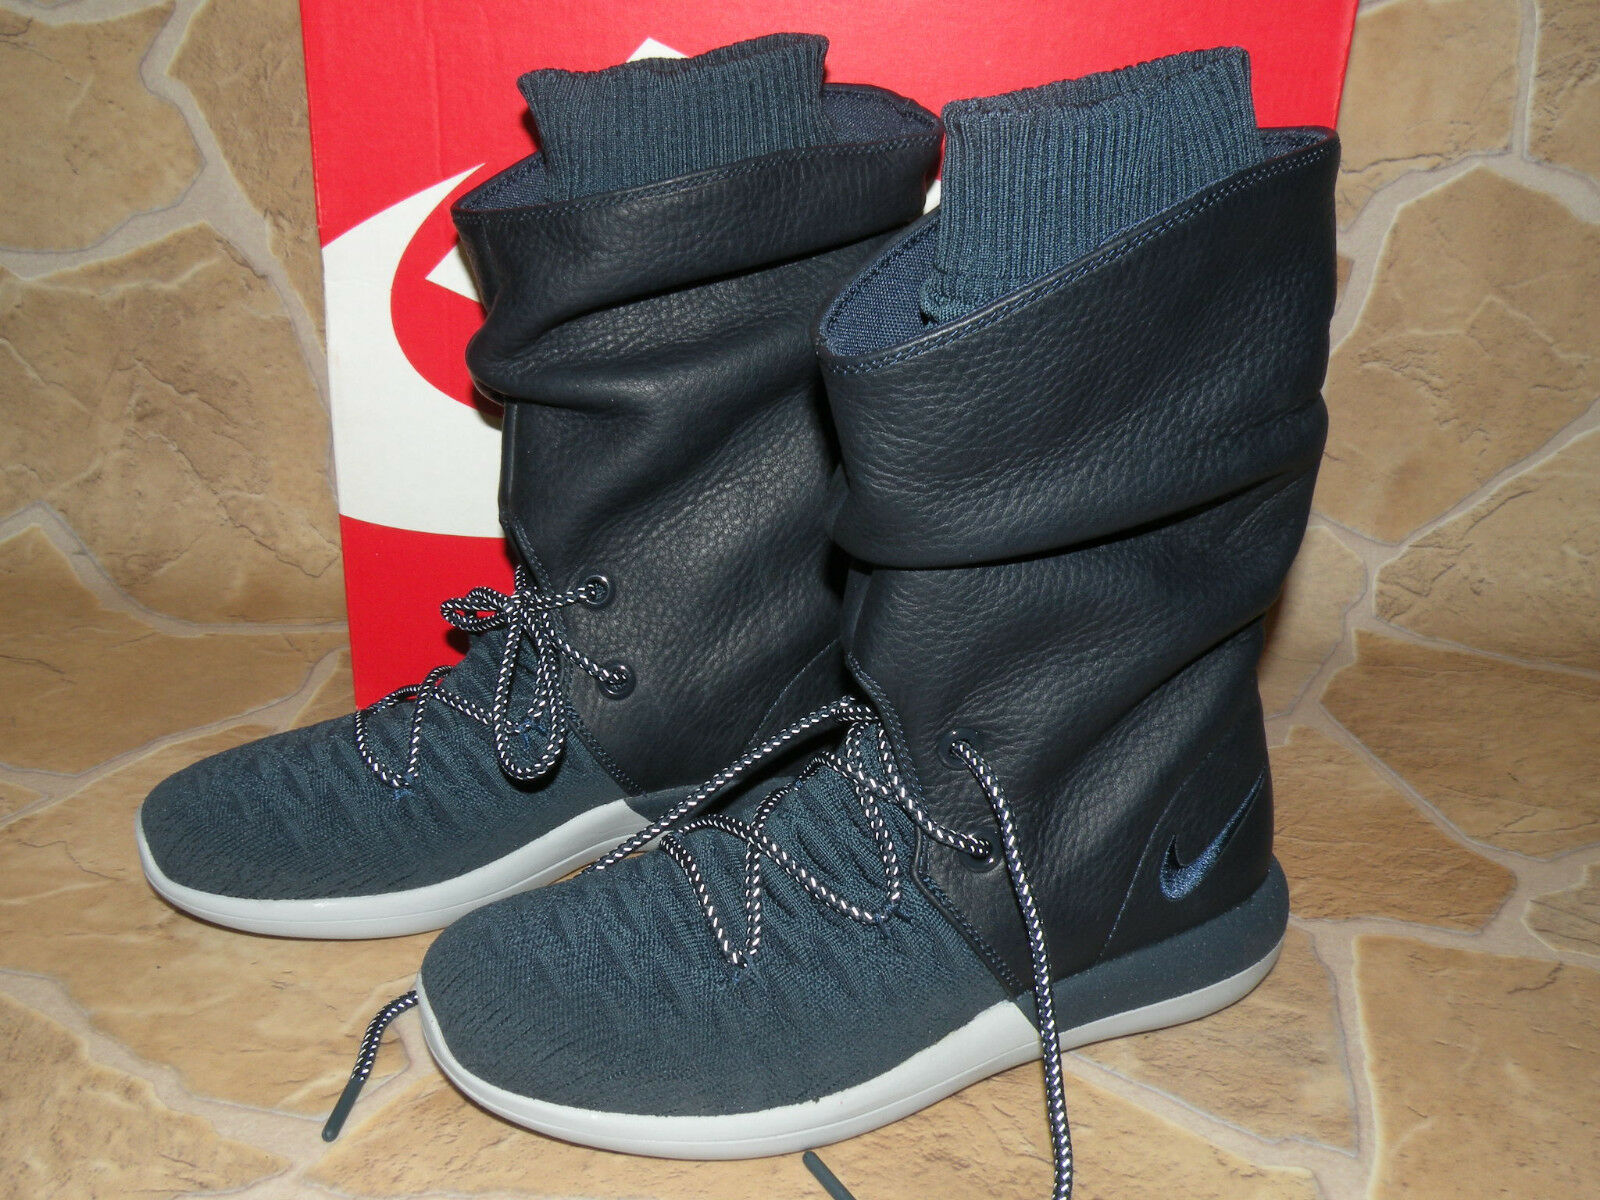 Nike W Roshe Two Hi Flyknit blau Gr.38 Damen Sneakerboot